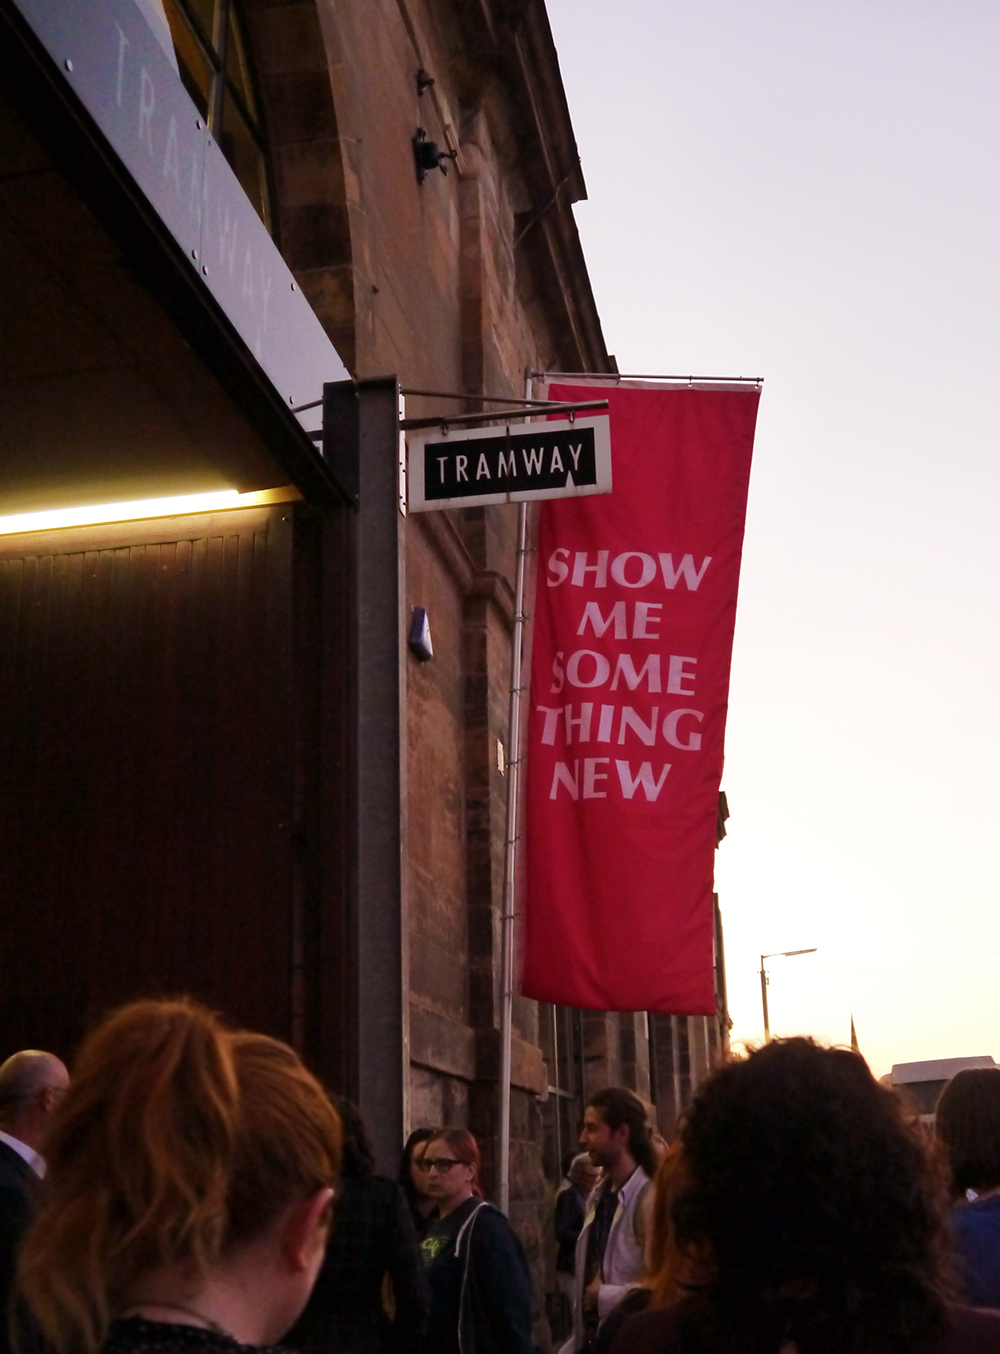 Turner Prize, Turner Prize 2015, Citizen M Glasgow, blogger event, PR event Glasgow, Scottish bloggers, Tramway Glasgow, art exhibition